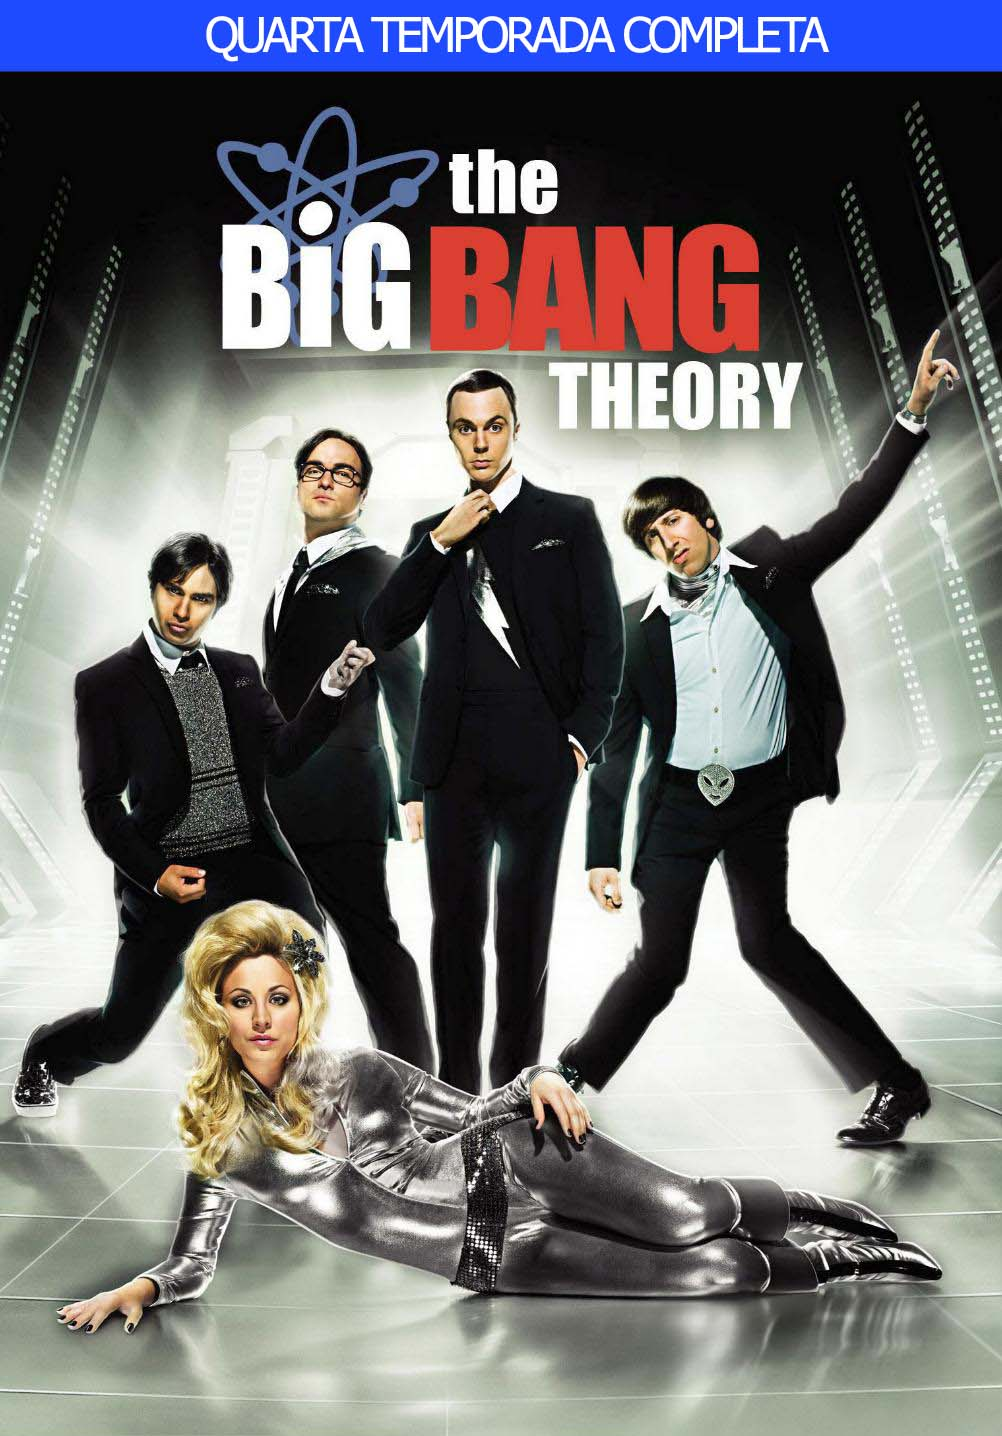 The Big Bang Theory 4ª Temporada Torrent – BluRay 720p Dual Áudio (2010)